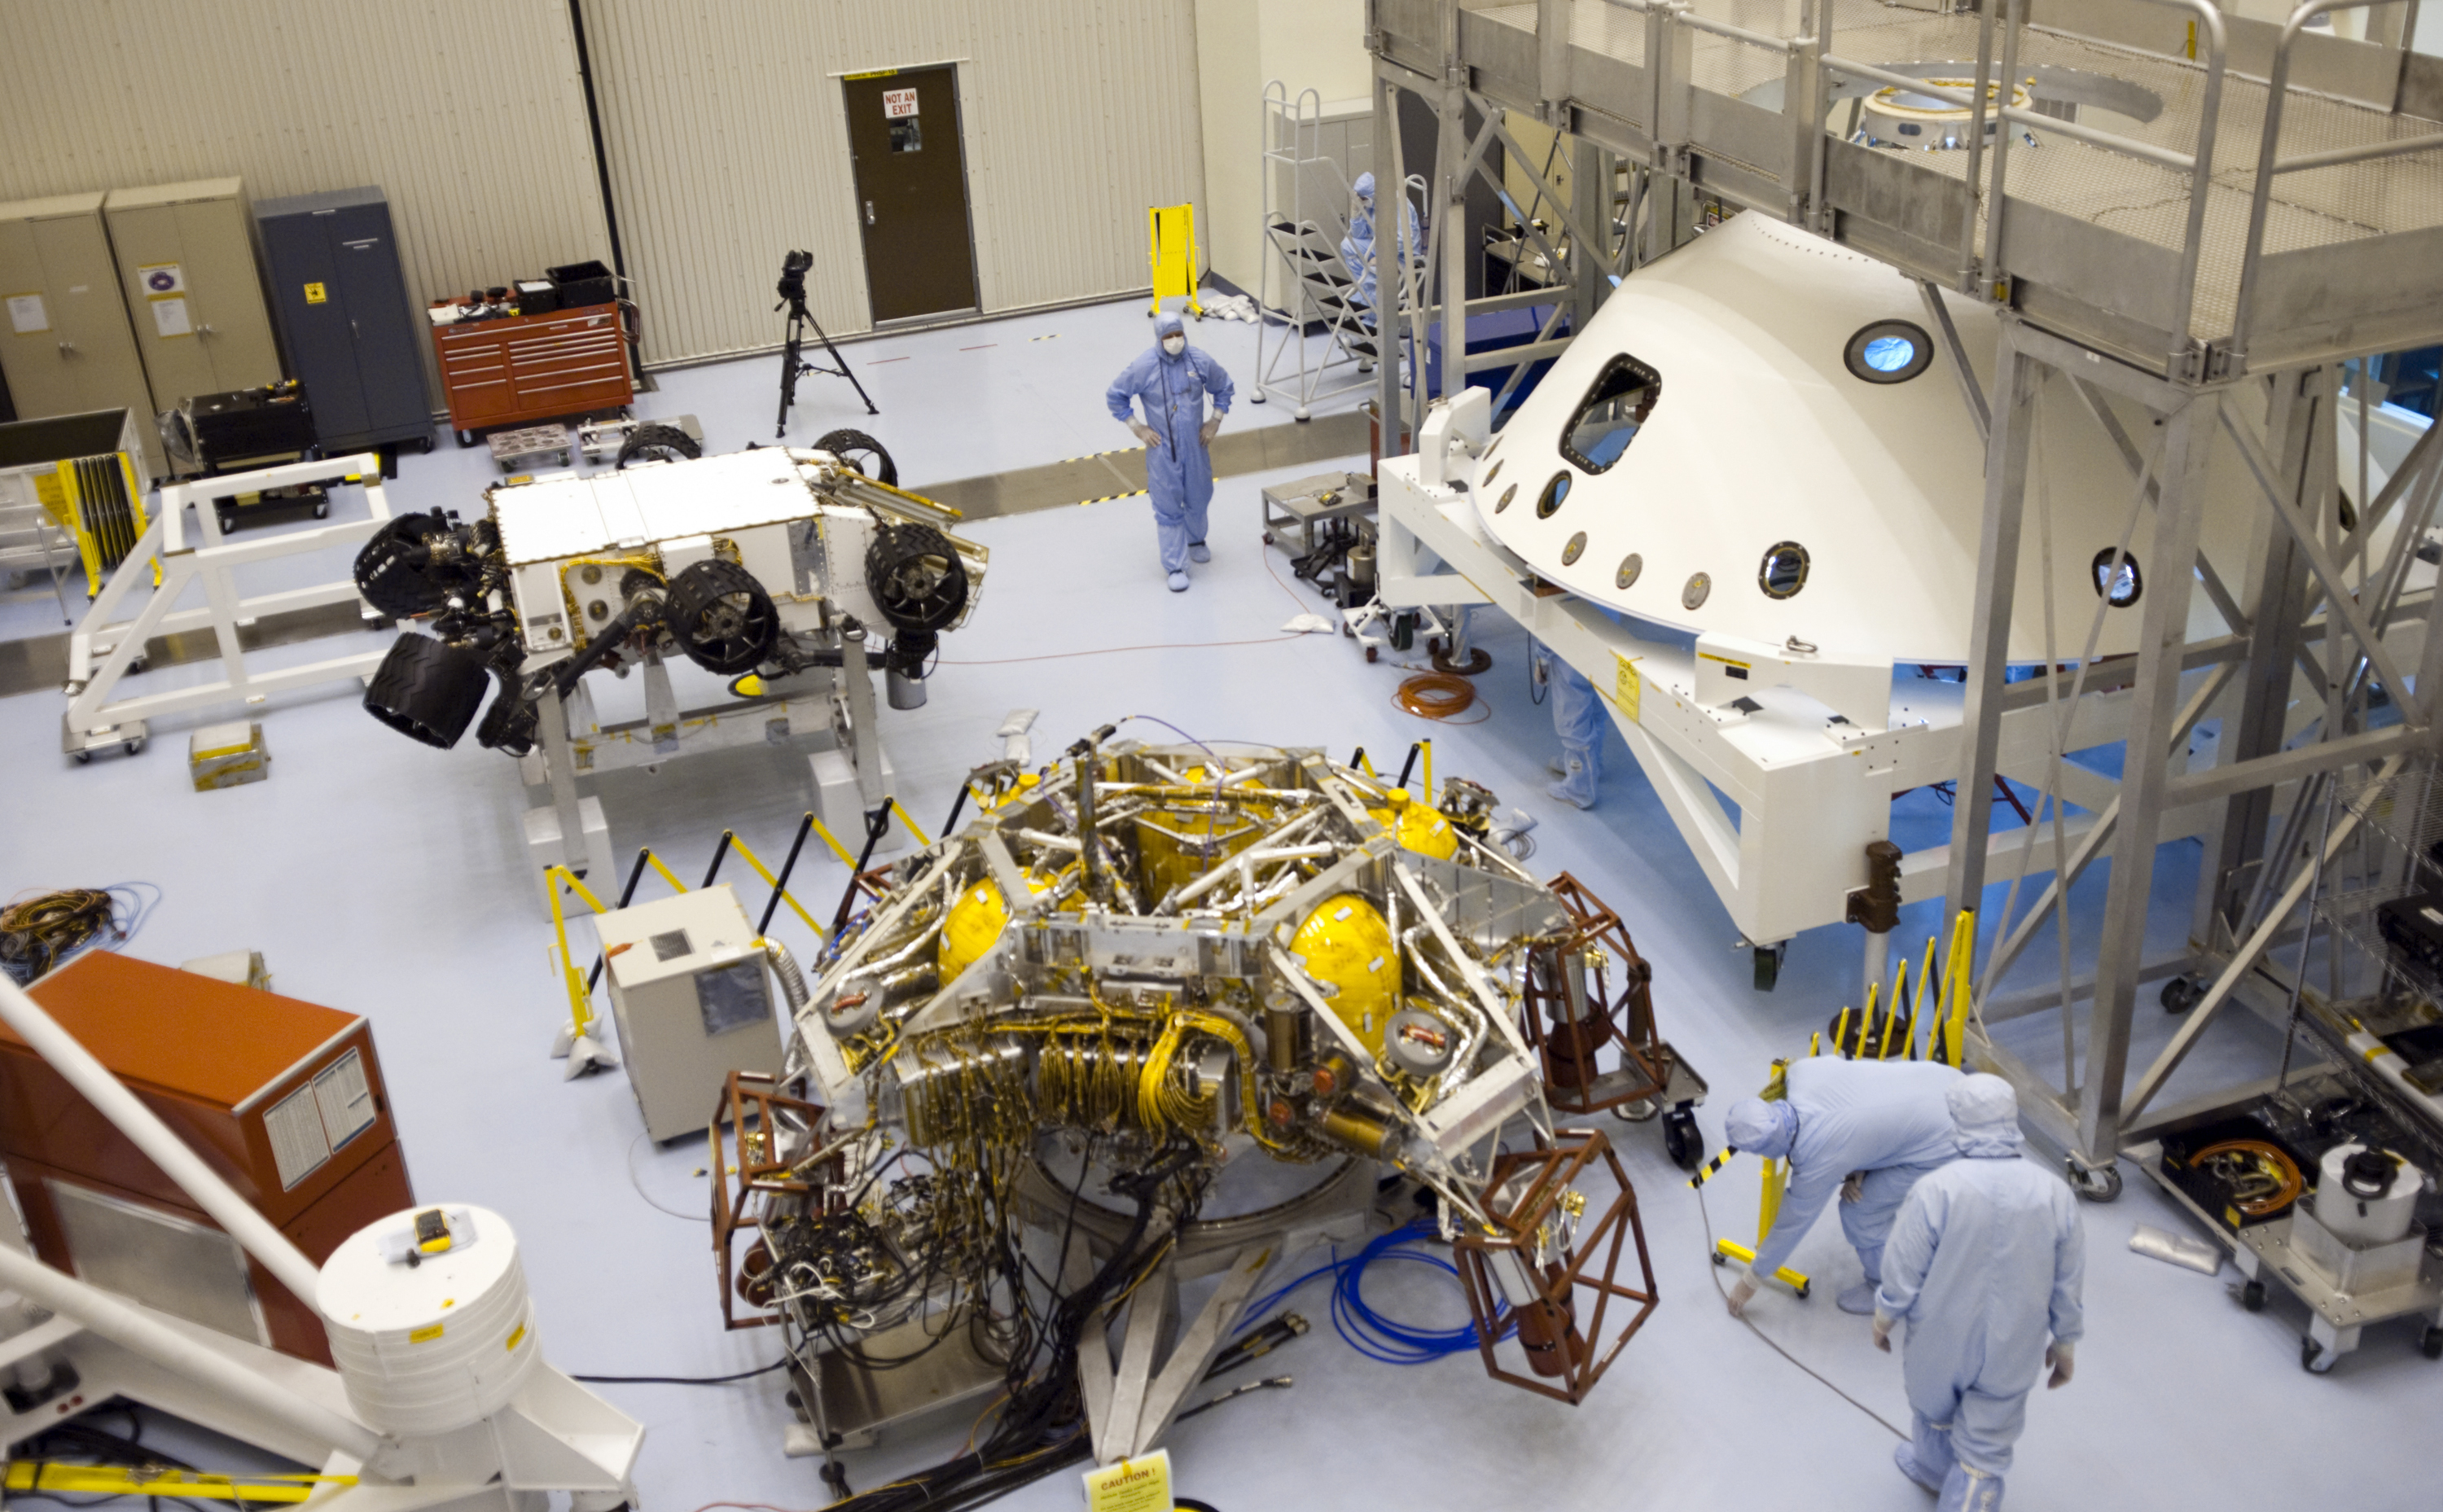 In the Payload Hazardous Servicing Facility at NASA's Kennedy Space Center in Florida, NASA's Mars Science Laboratory (MSL) rover, known as Curiosity, is being prepared to be moved to a rotation fixture for testing.